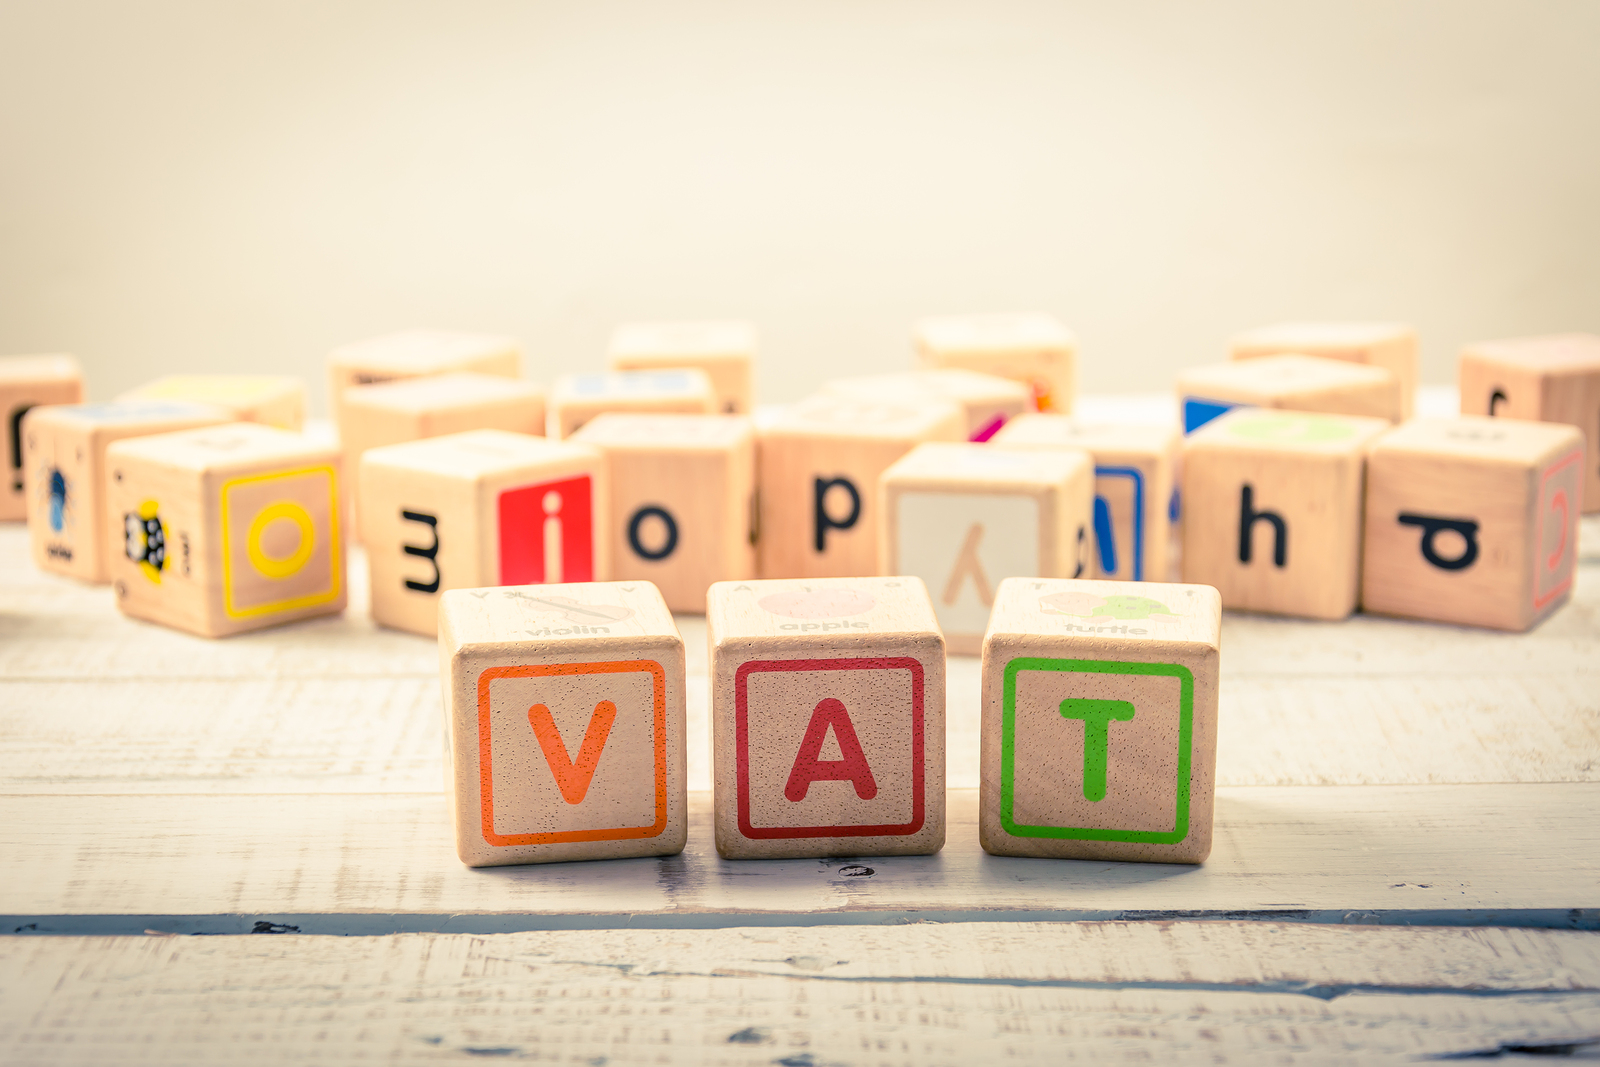 Wrapping your head around VAT